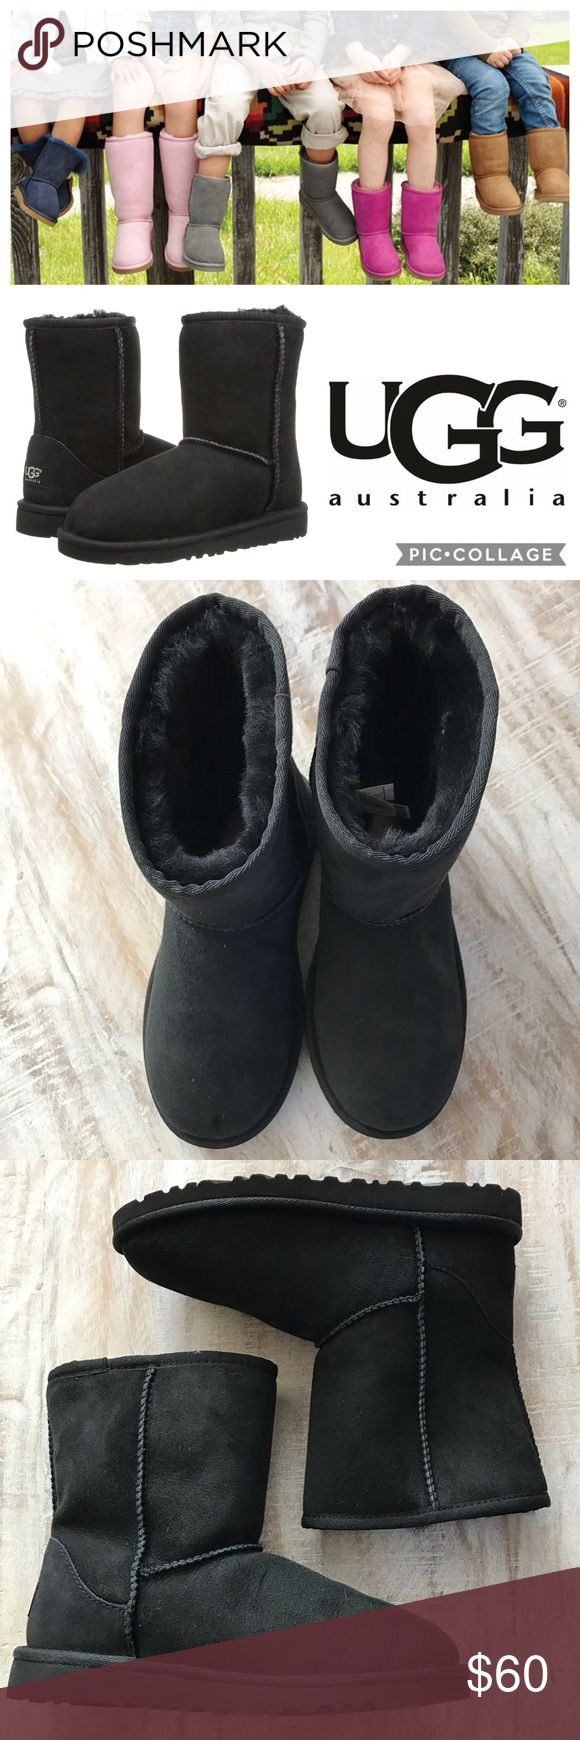 ❄️KIDS!! UGG Classic Short Boot/Black/sz 4 Keep your child's feet warm this season with these Classic Short Boots from UGG, An adorable short boot is designed especially for a child's foot. The soft, cozy lining is made from genuine shearling or plush UGGpure™, a textile made entirely from wool but shaped to feel and wear like genuine shearling.  Twinface sheepskin upper/genuine shearling or 100% wool lining/EVA sole Dept store closeout/customer return. Prob worn once, but look brand new…